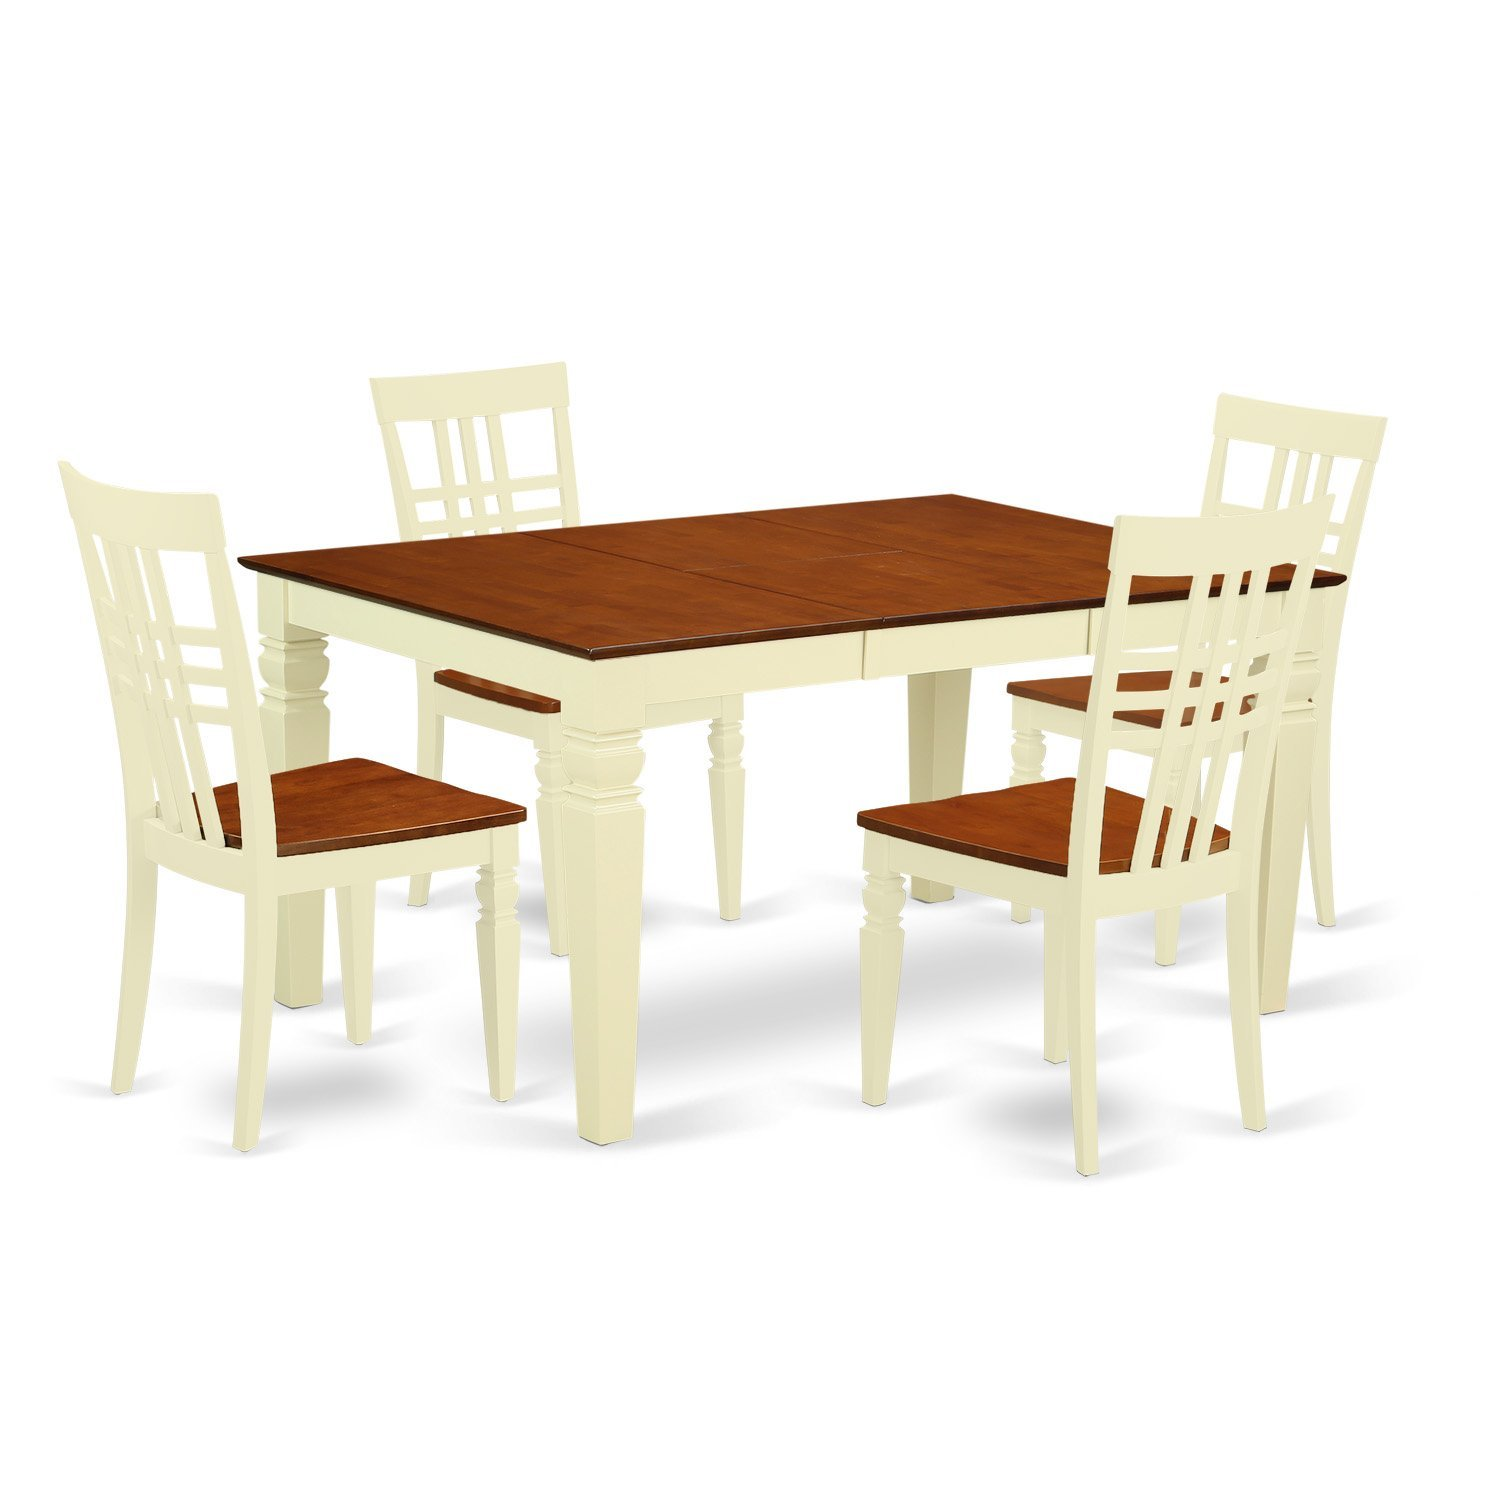 East West Furniture Weston WELG5-BMK-W 5 Pc Kitchen Set with a Dinning Table and 4 Wood Dining Chairs, Buttermilk and Cherry